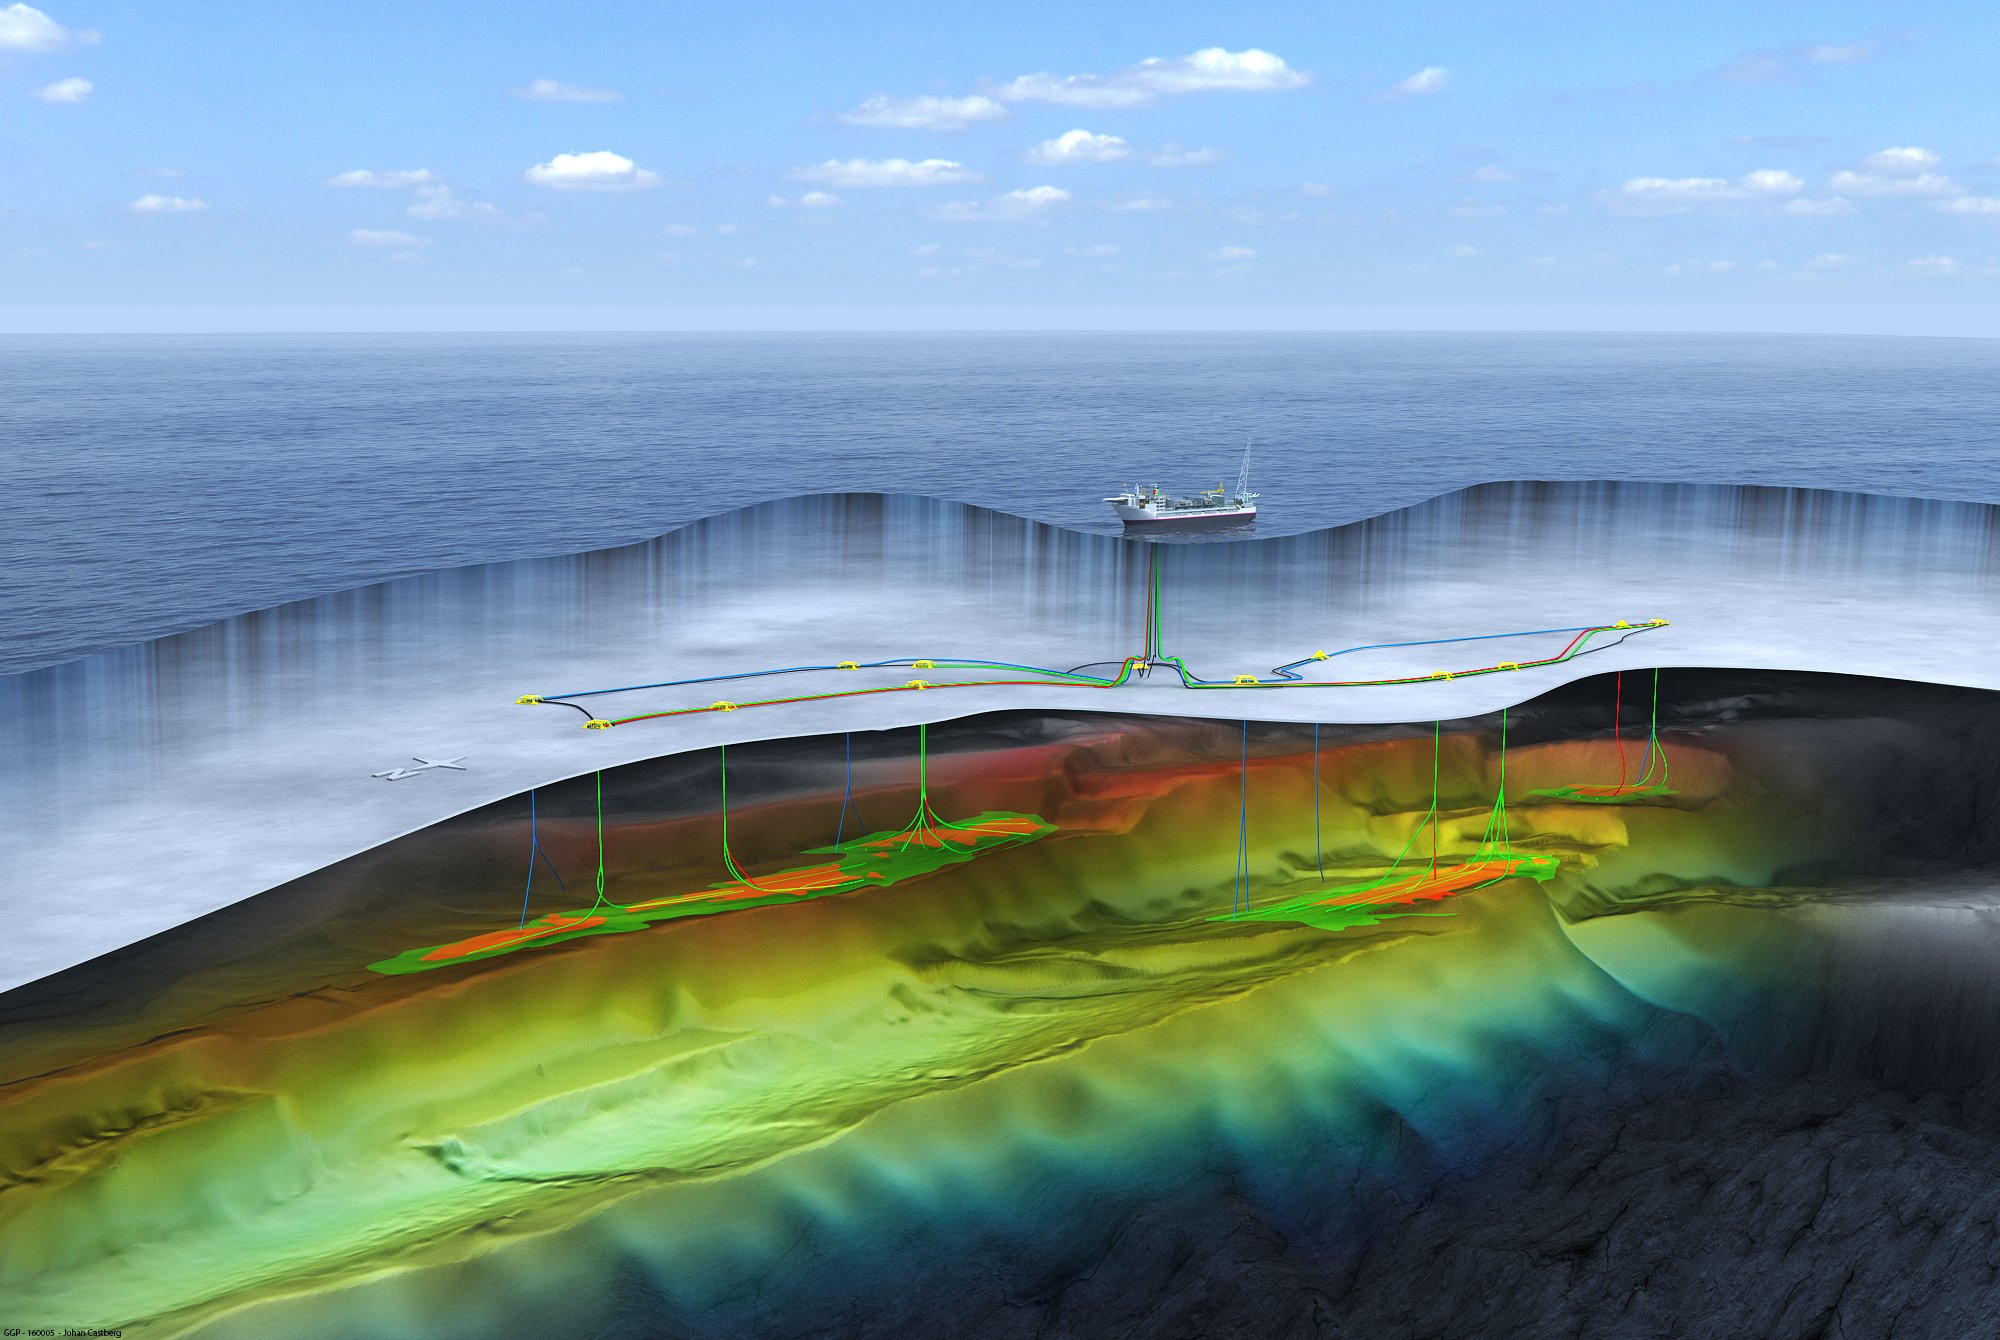 Statoil announces massive investment in its northernmost oil field